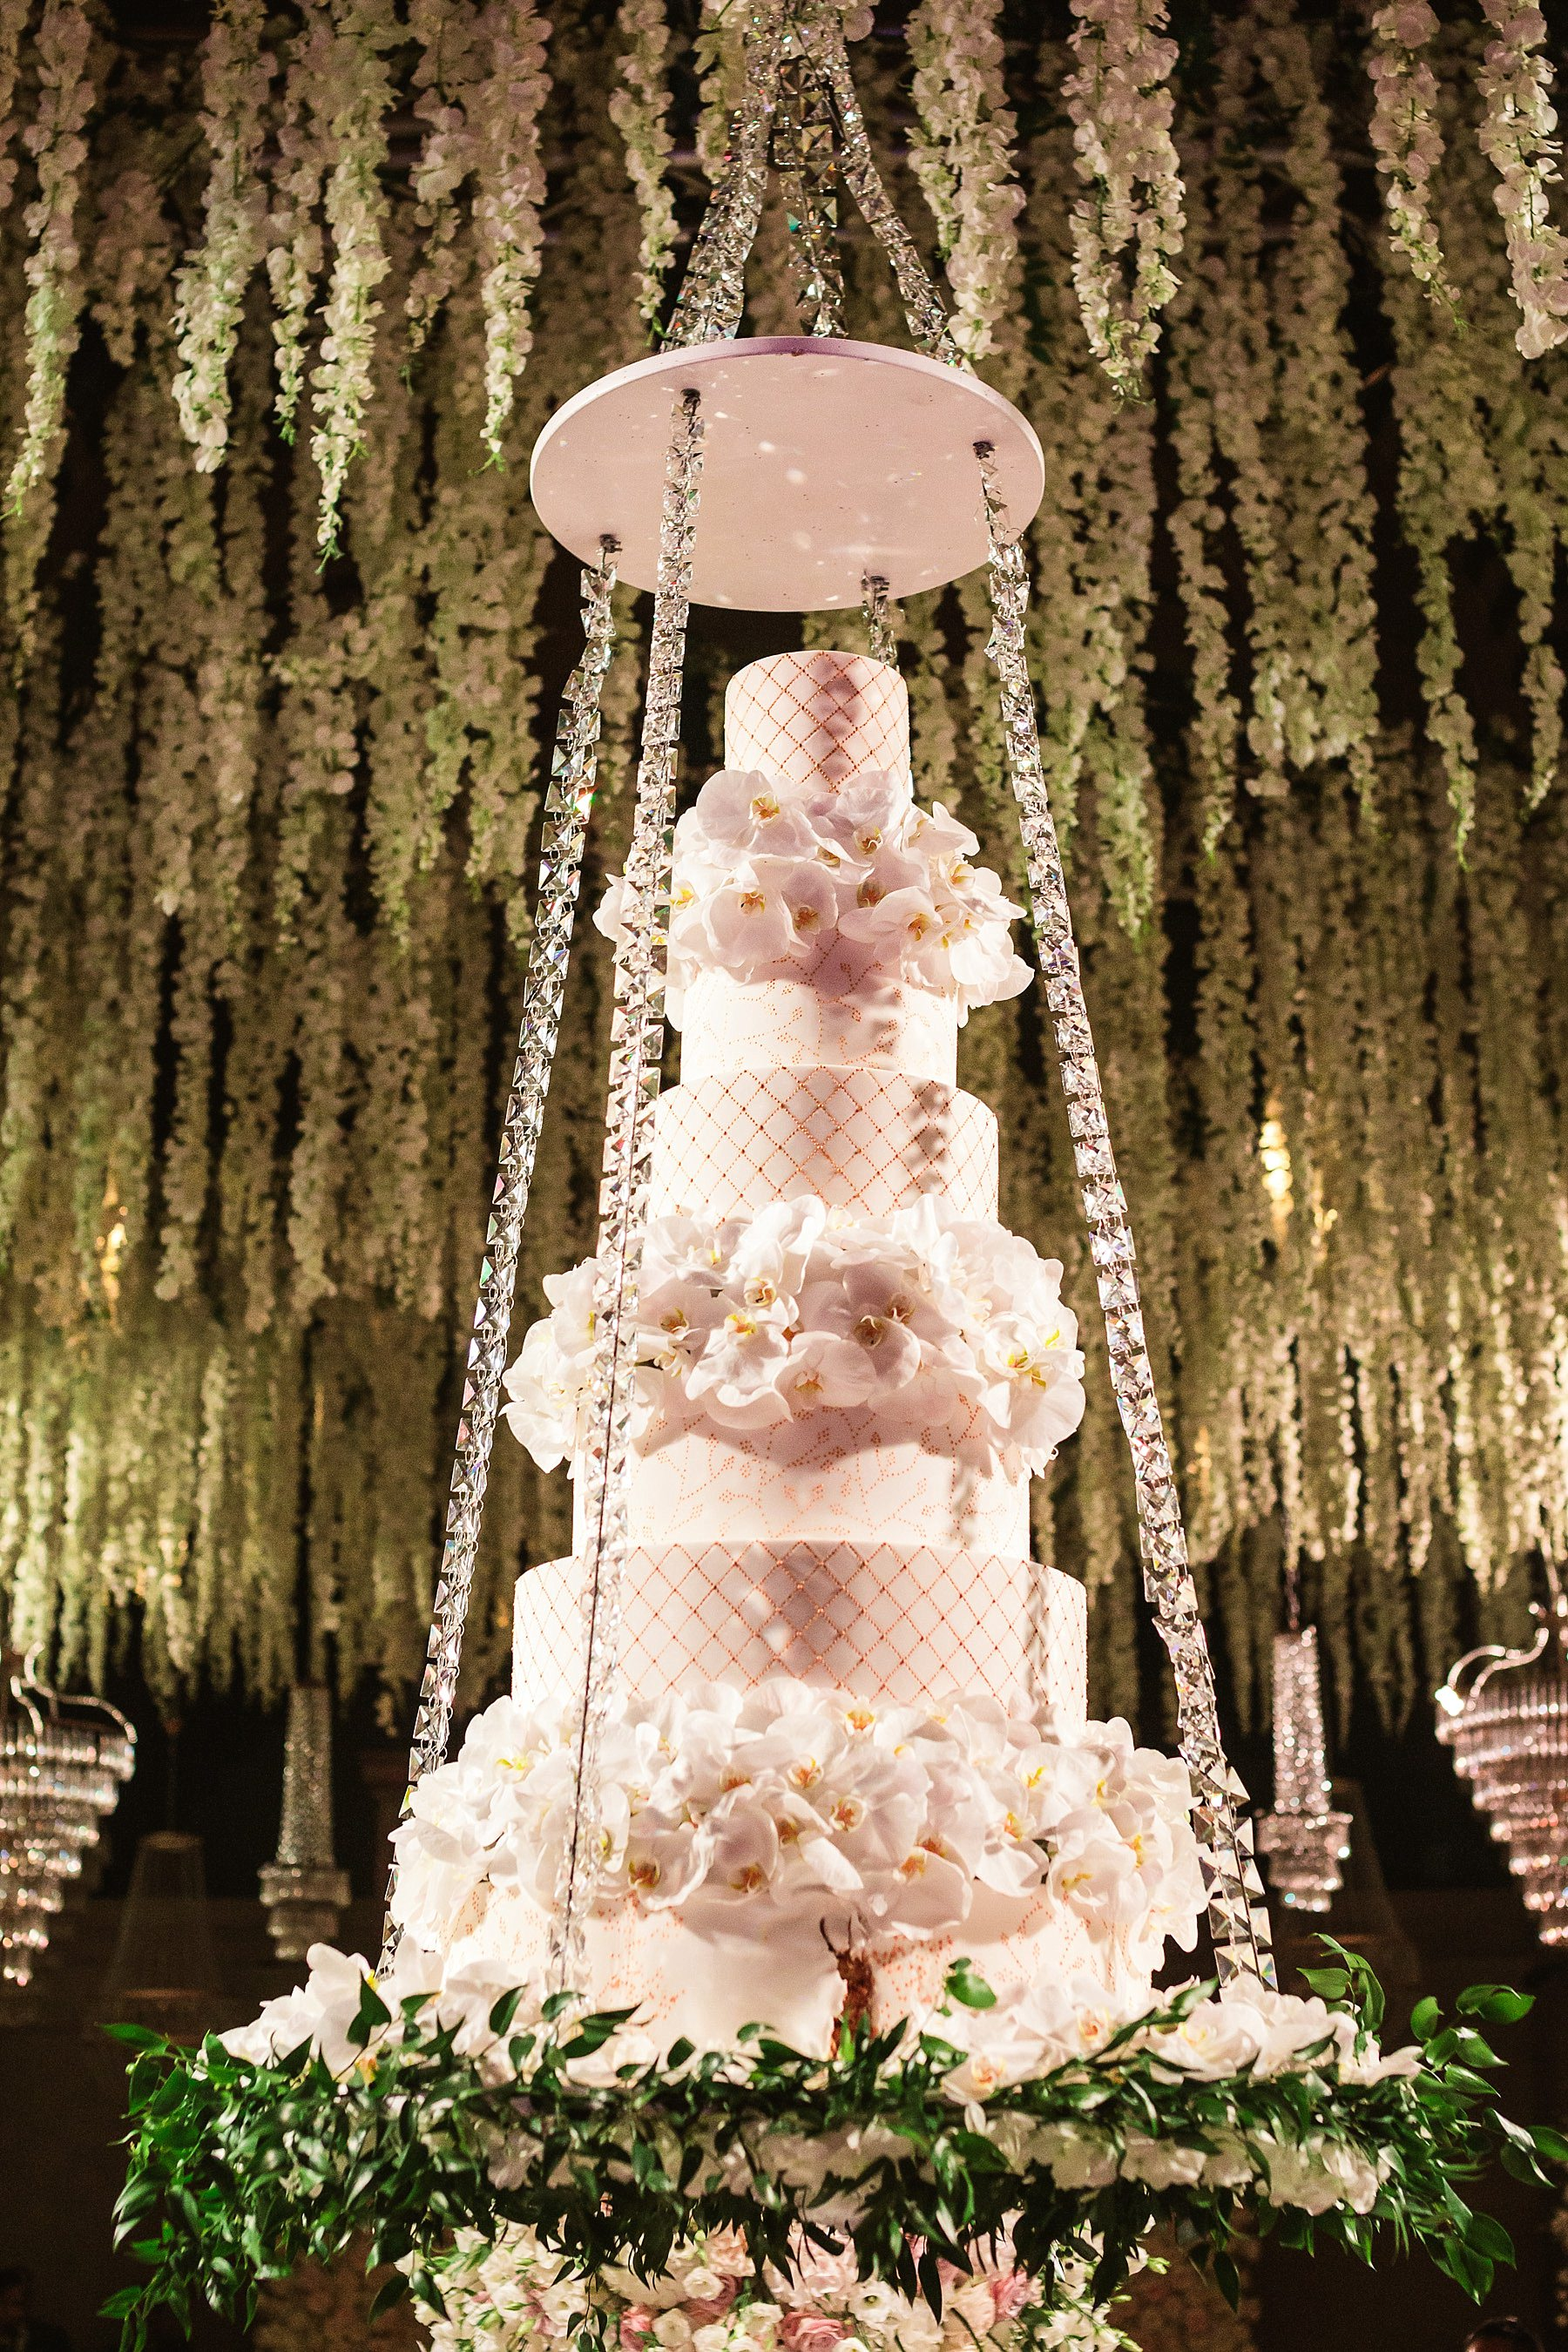 Wedding cake - Four Seasons Hotel Florence